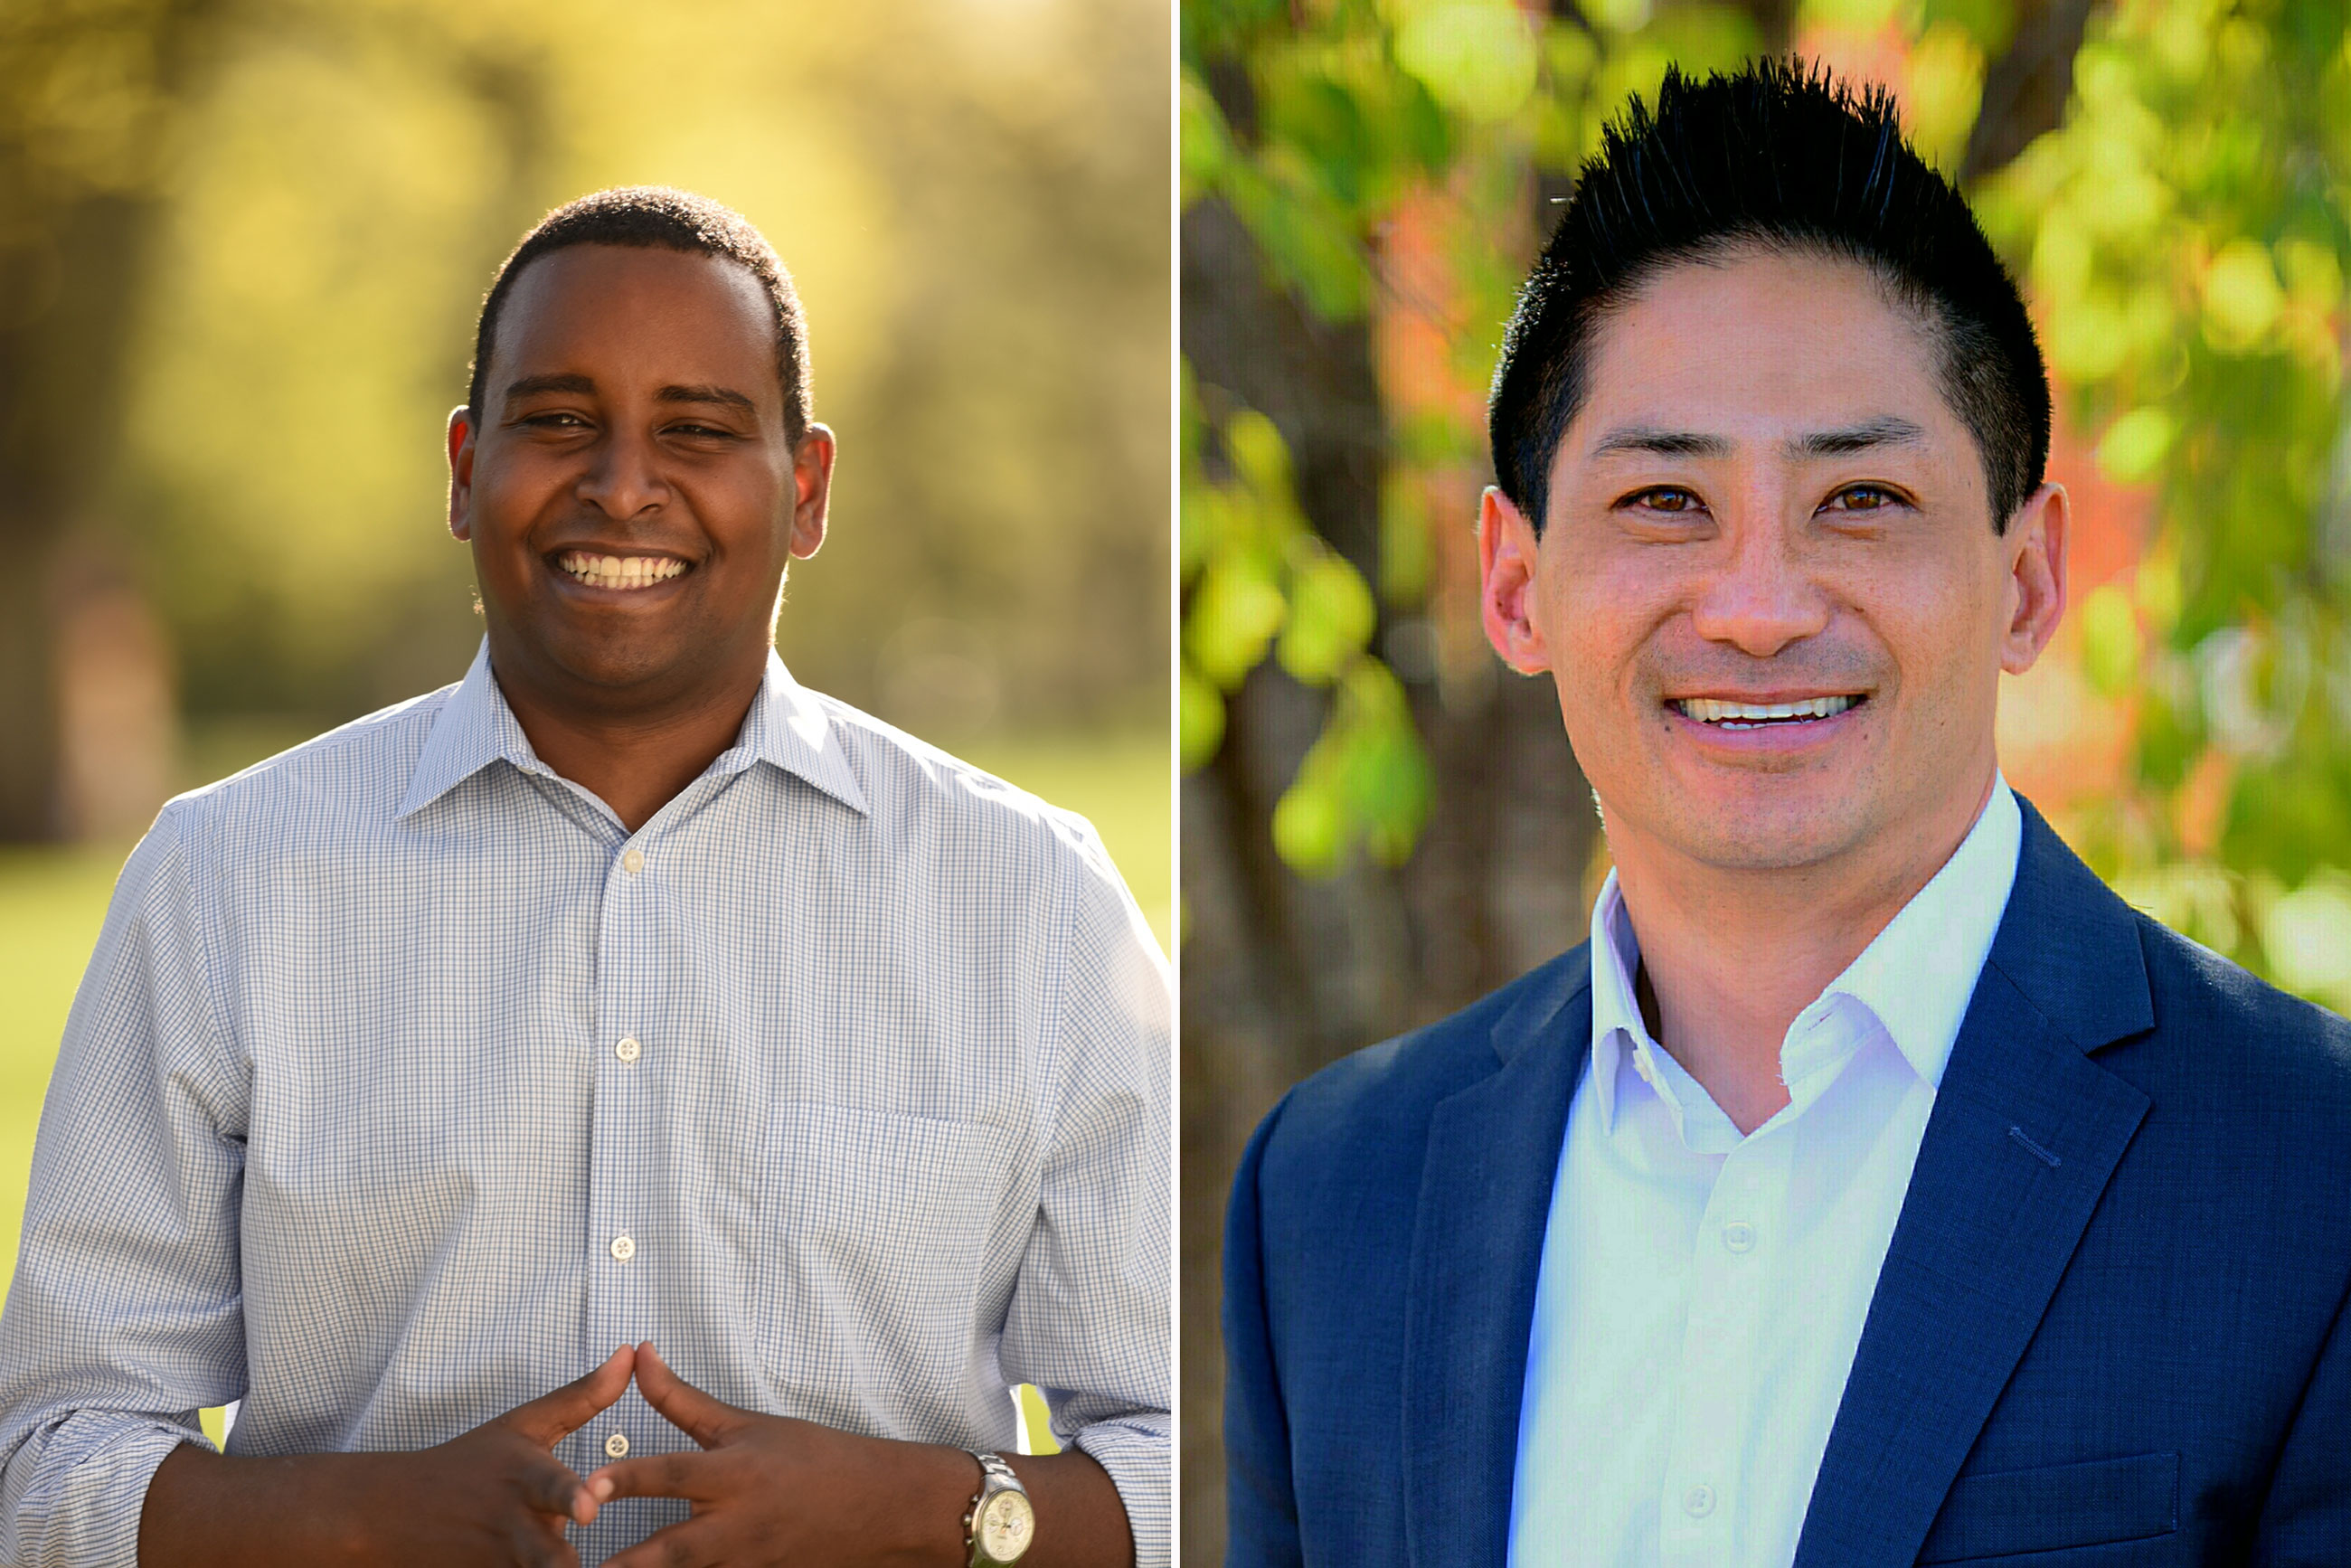 Photo: Joe Neguse and Paul Yu